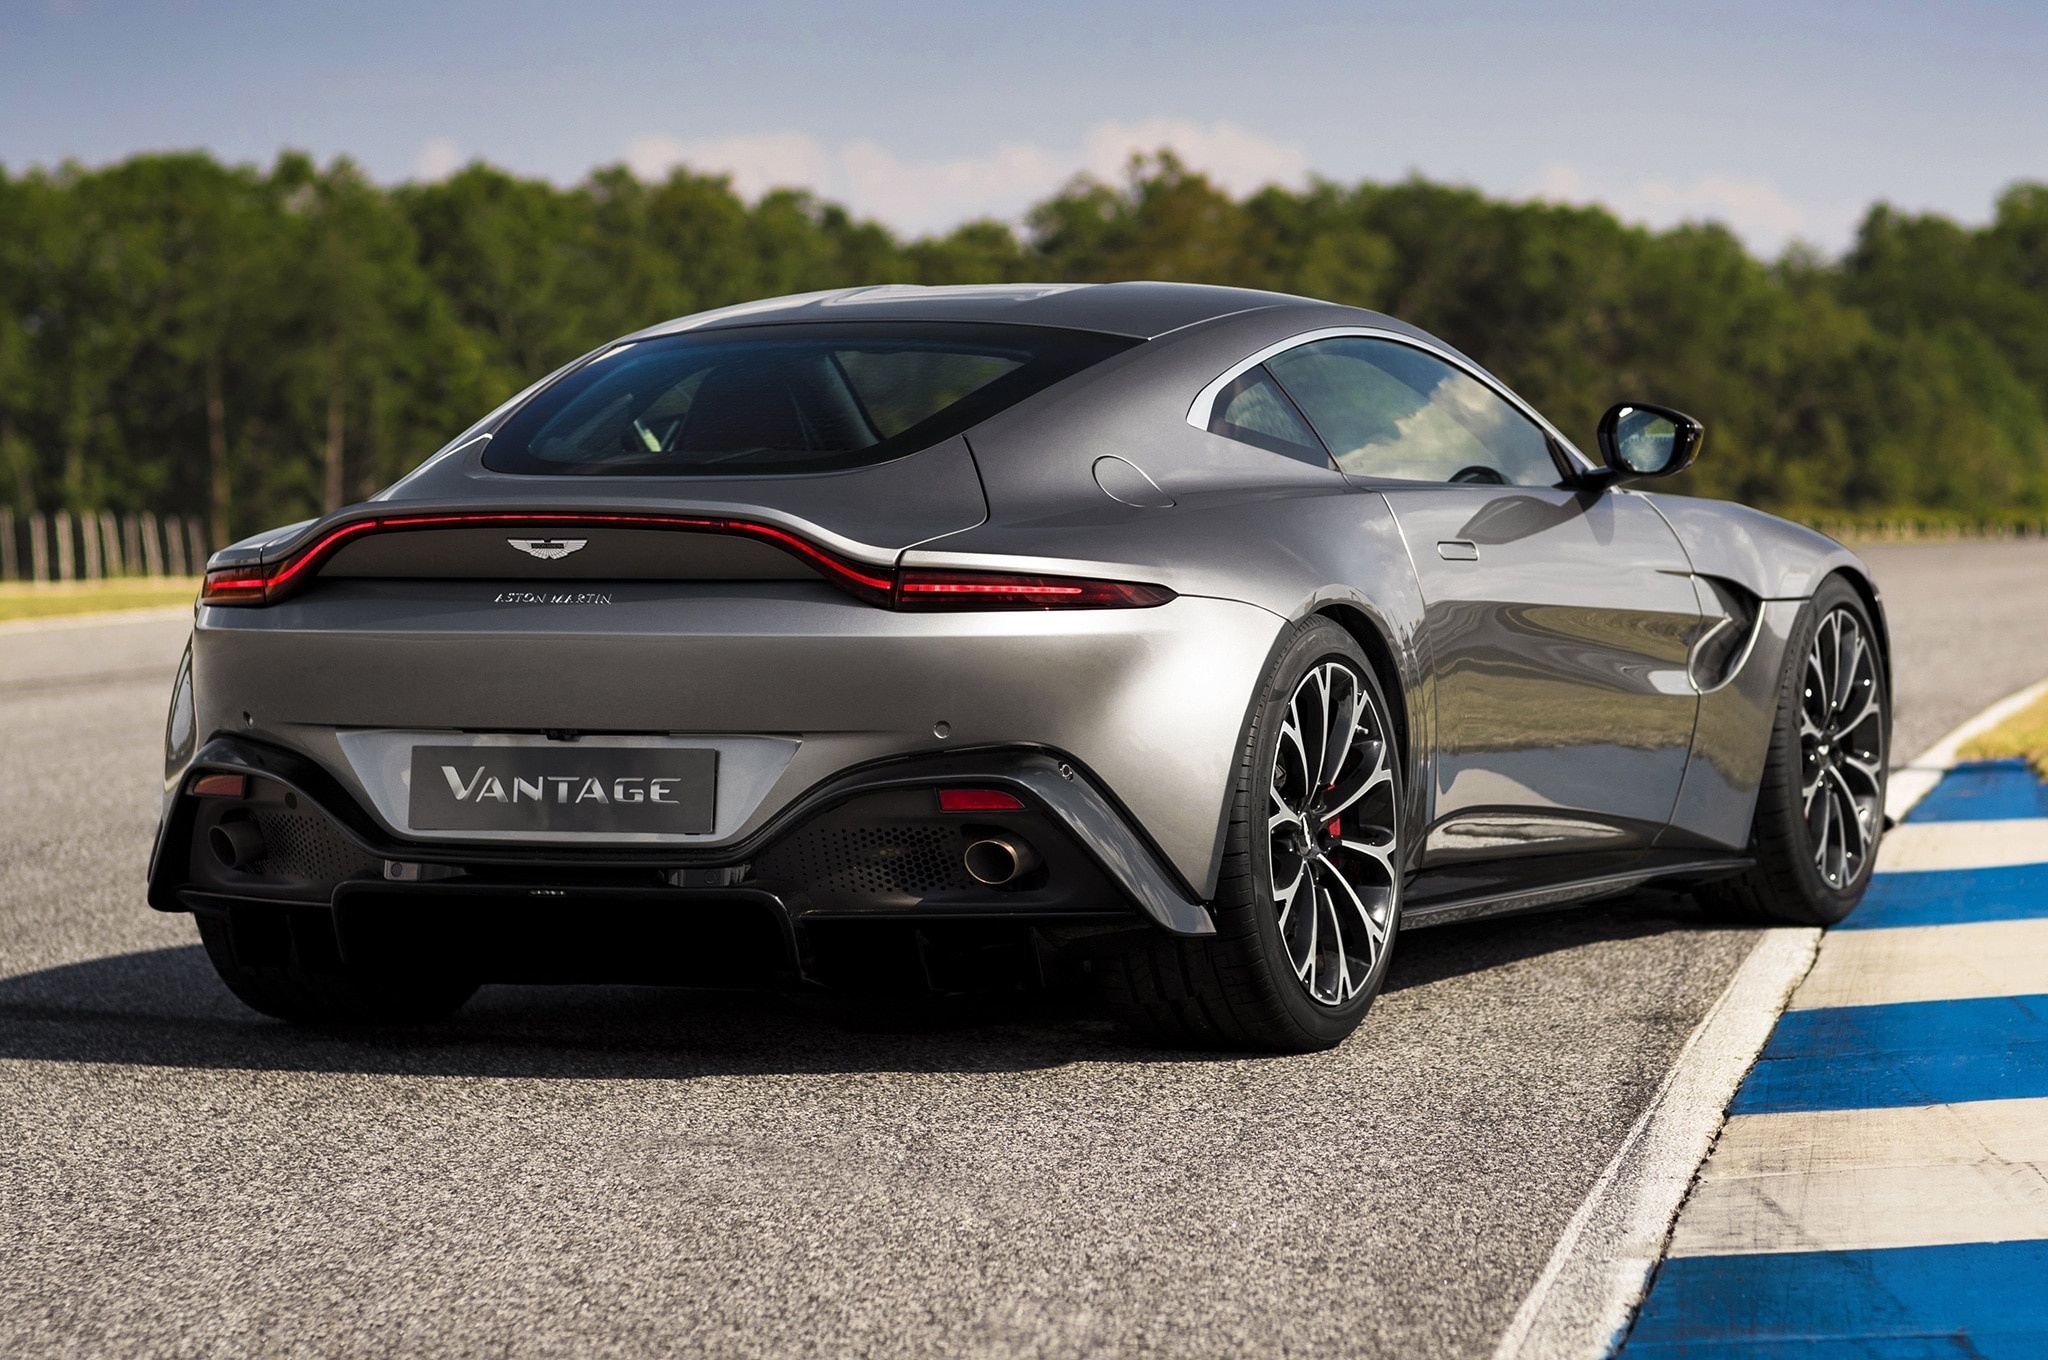 aston martin ceo andy palmer on aston's product roadmap, business